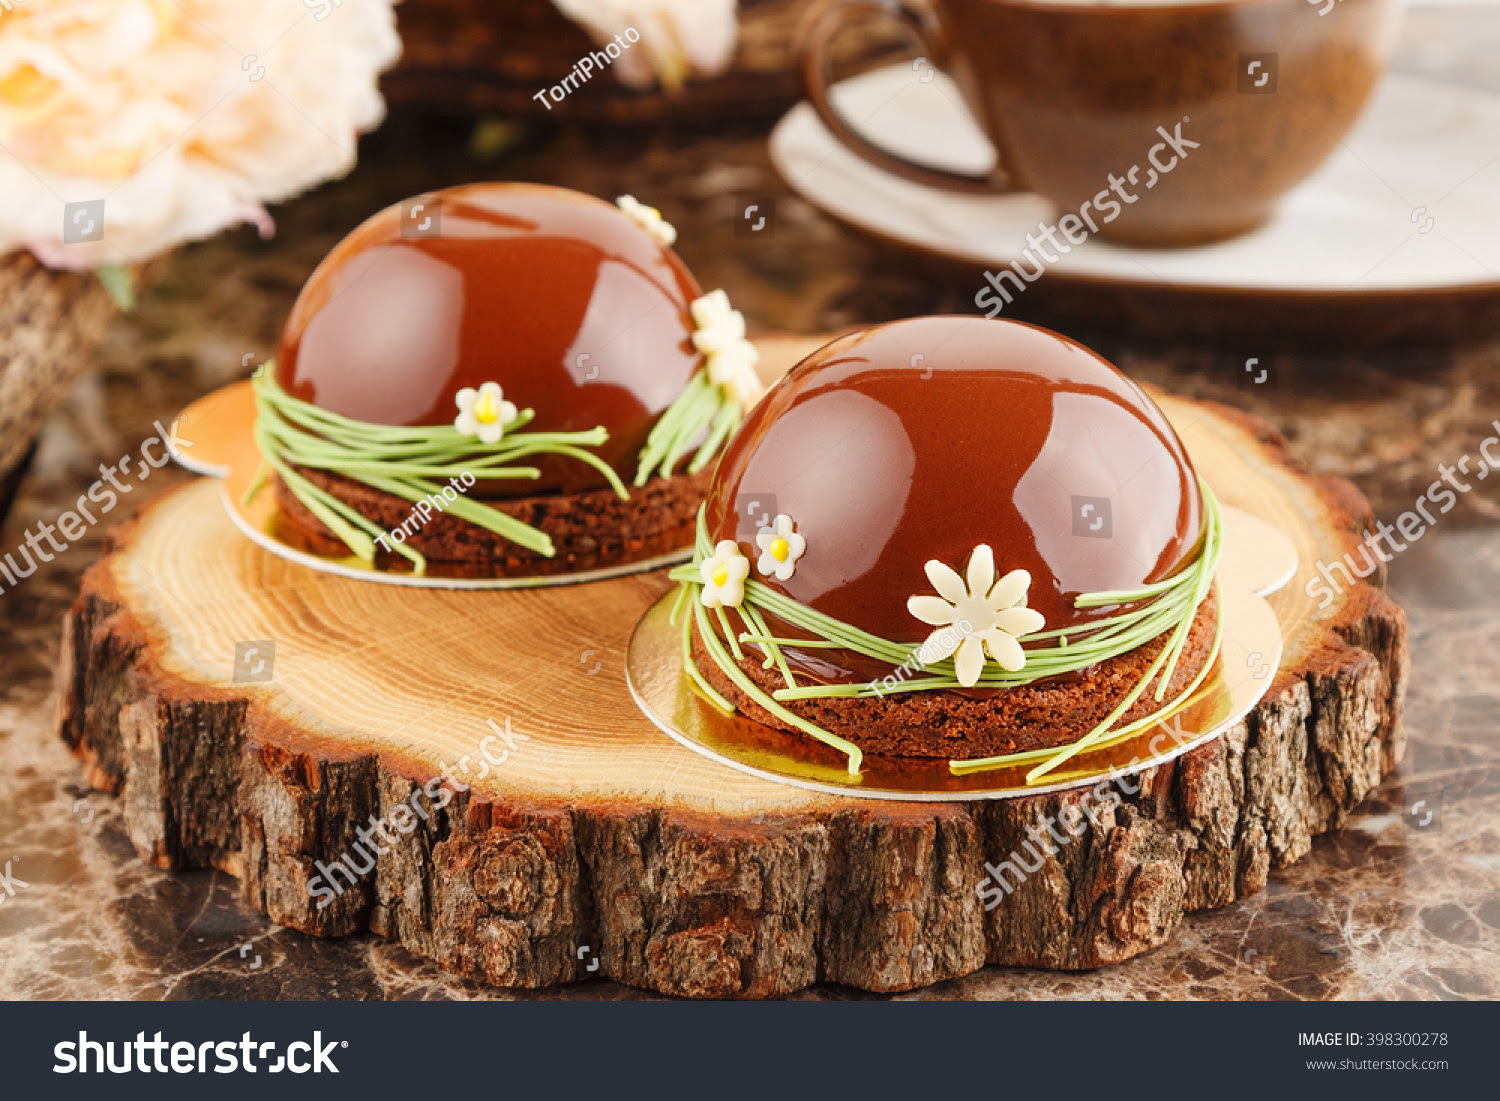 http://www.shutterstock.com/pic-398300278/stock-photo-french-mousse-cake-covered-with-chocolate-glaze-on-rustic-brown-background-modern-european-cake.html